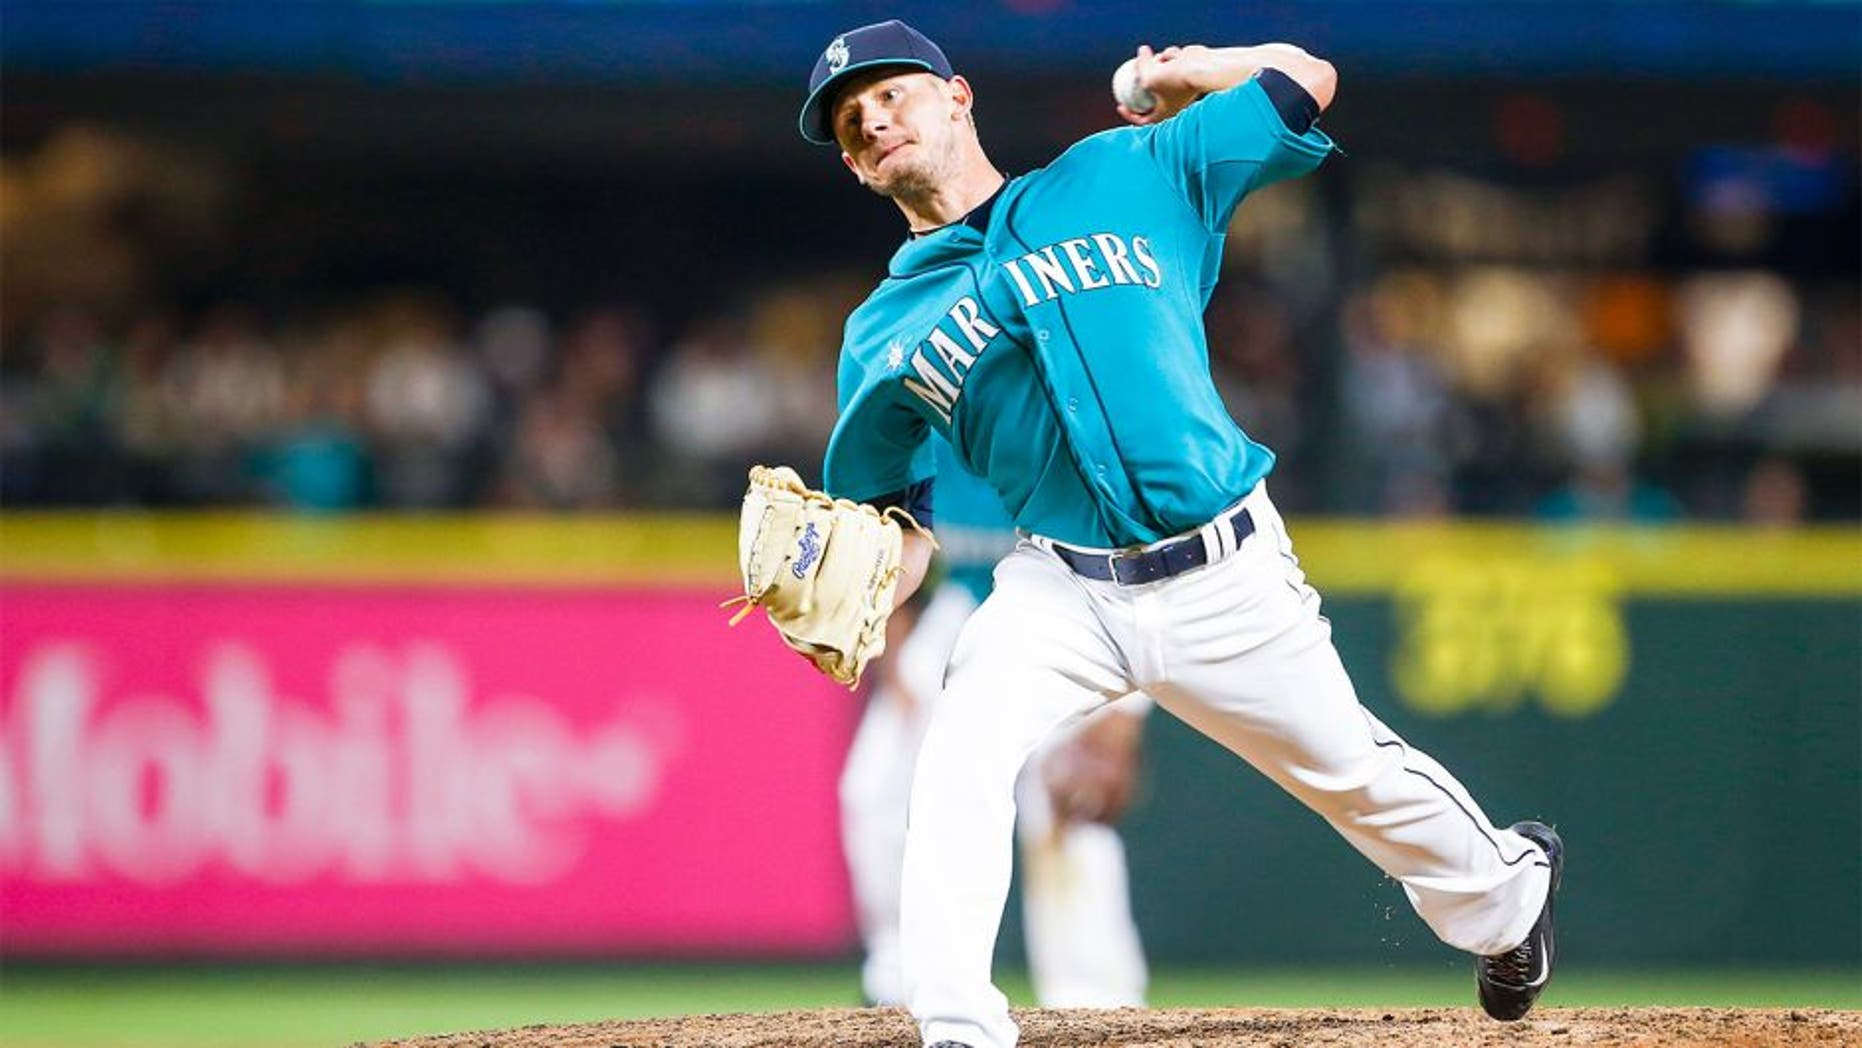 Aug 21, 2015; Seattle, WA, USA; Seattle Mariners pitcher Rob Rasmussen (50) throws the ball against the Chicago White Sox during the eighth inning at Safeco Field. Mandatory Credit: Joe Nicholson-USA TODAY Sports